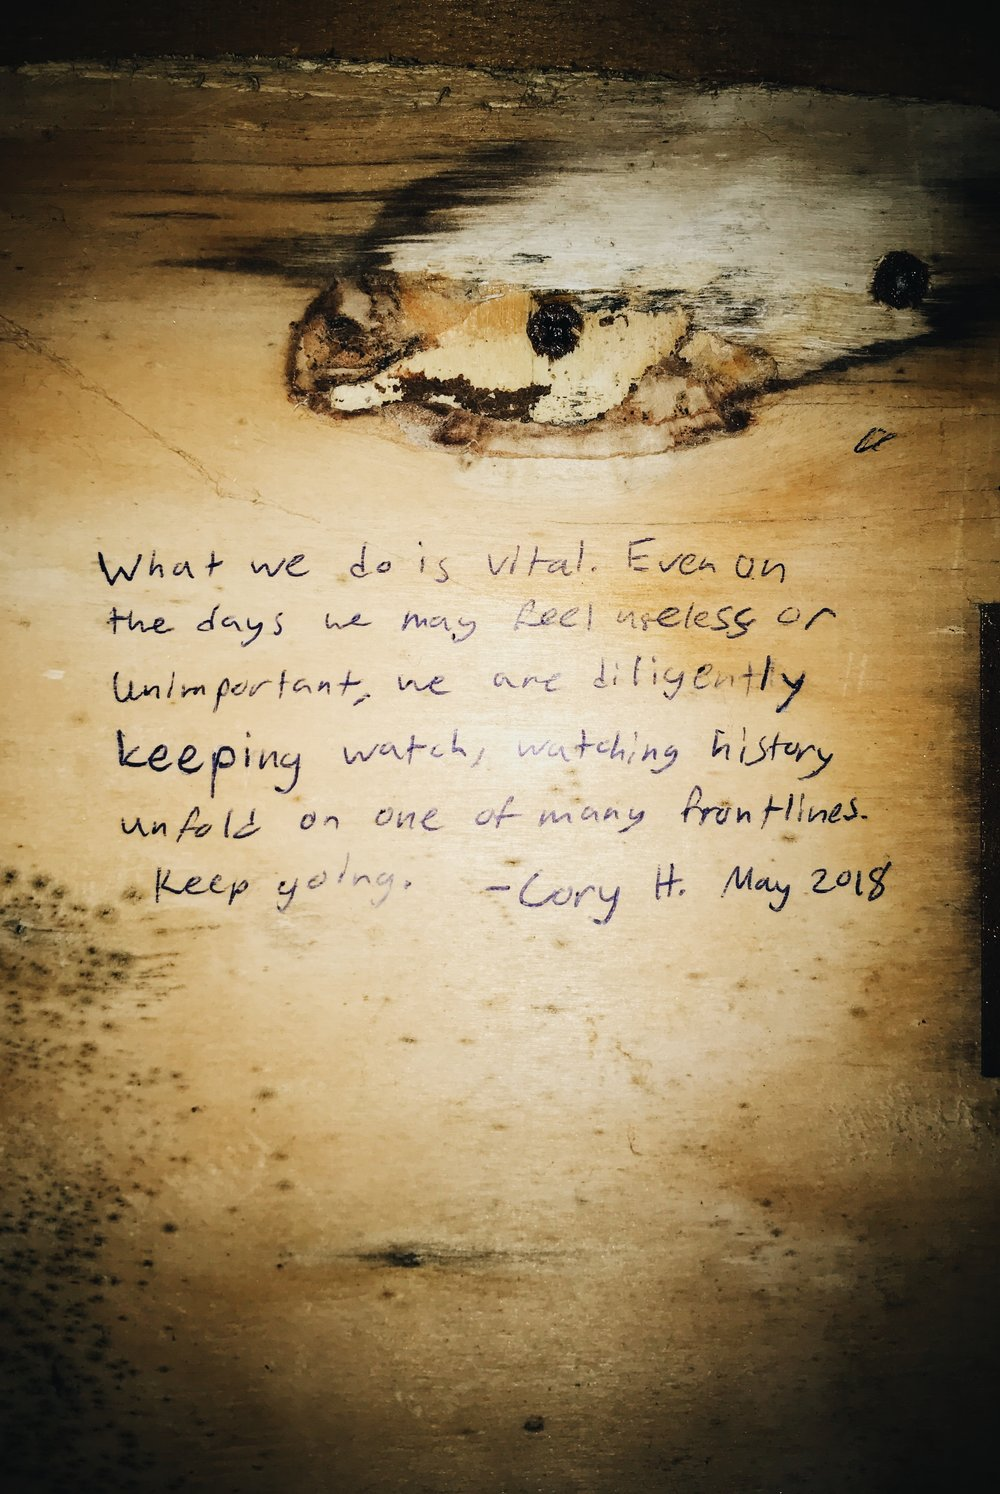 The quote I left on the wall of the Korakas spotting hut